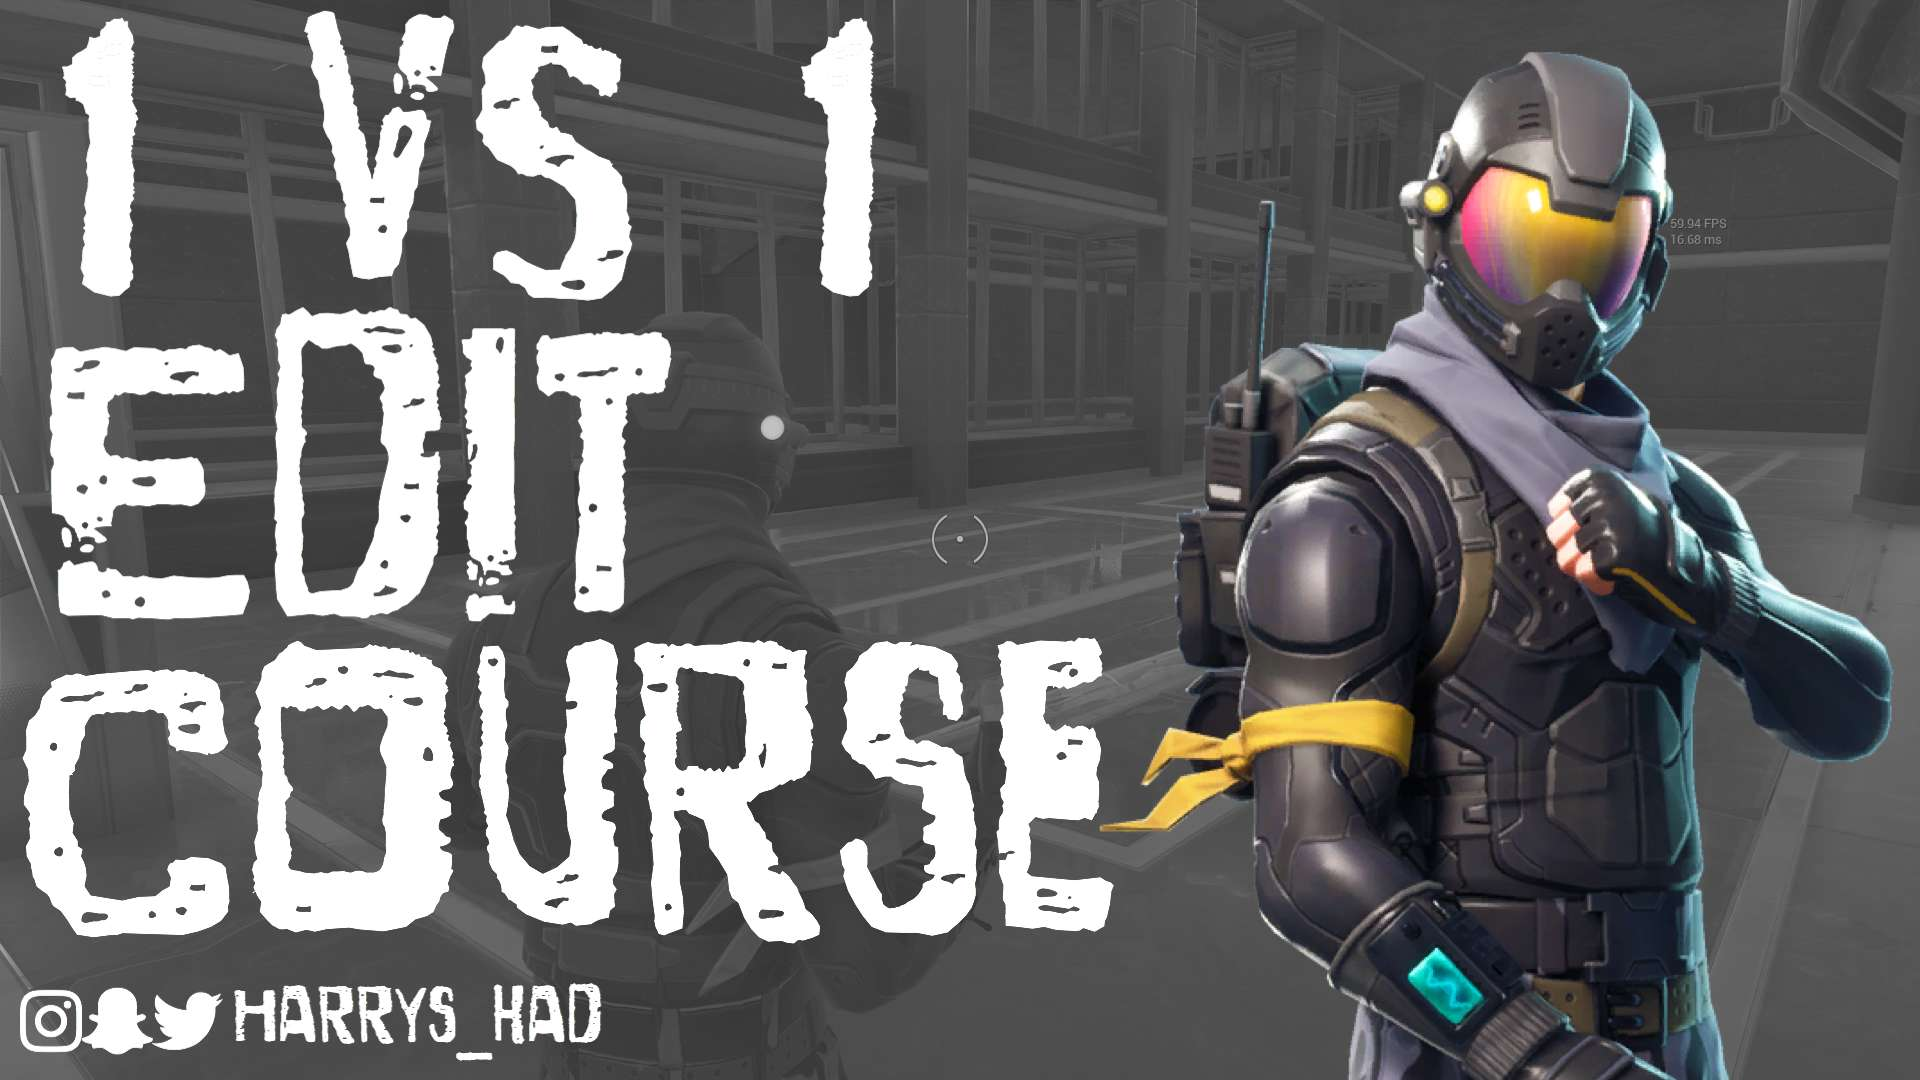 1 VS 1 EDIT COURSE